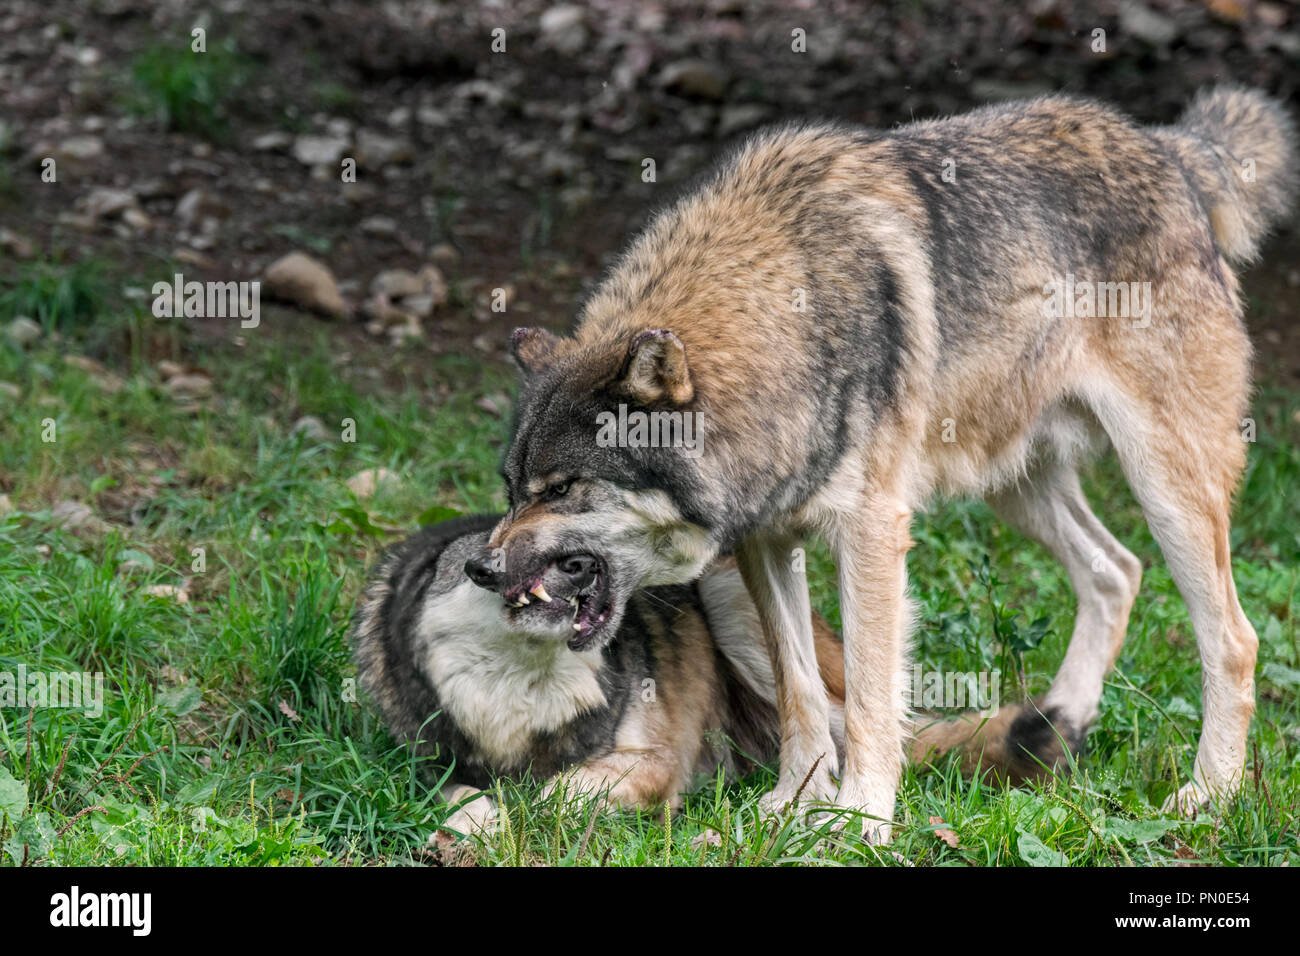 Dominant gray wolf / grey wolf (Canis lupus) grabbing pack member by the muzzle to confirm a relationship - Stock Image